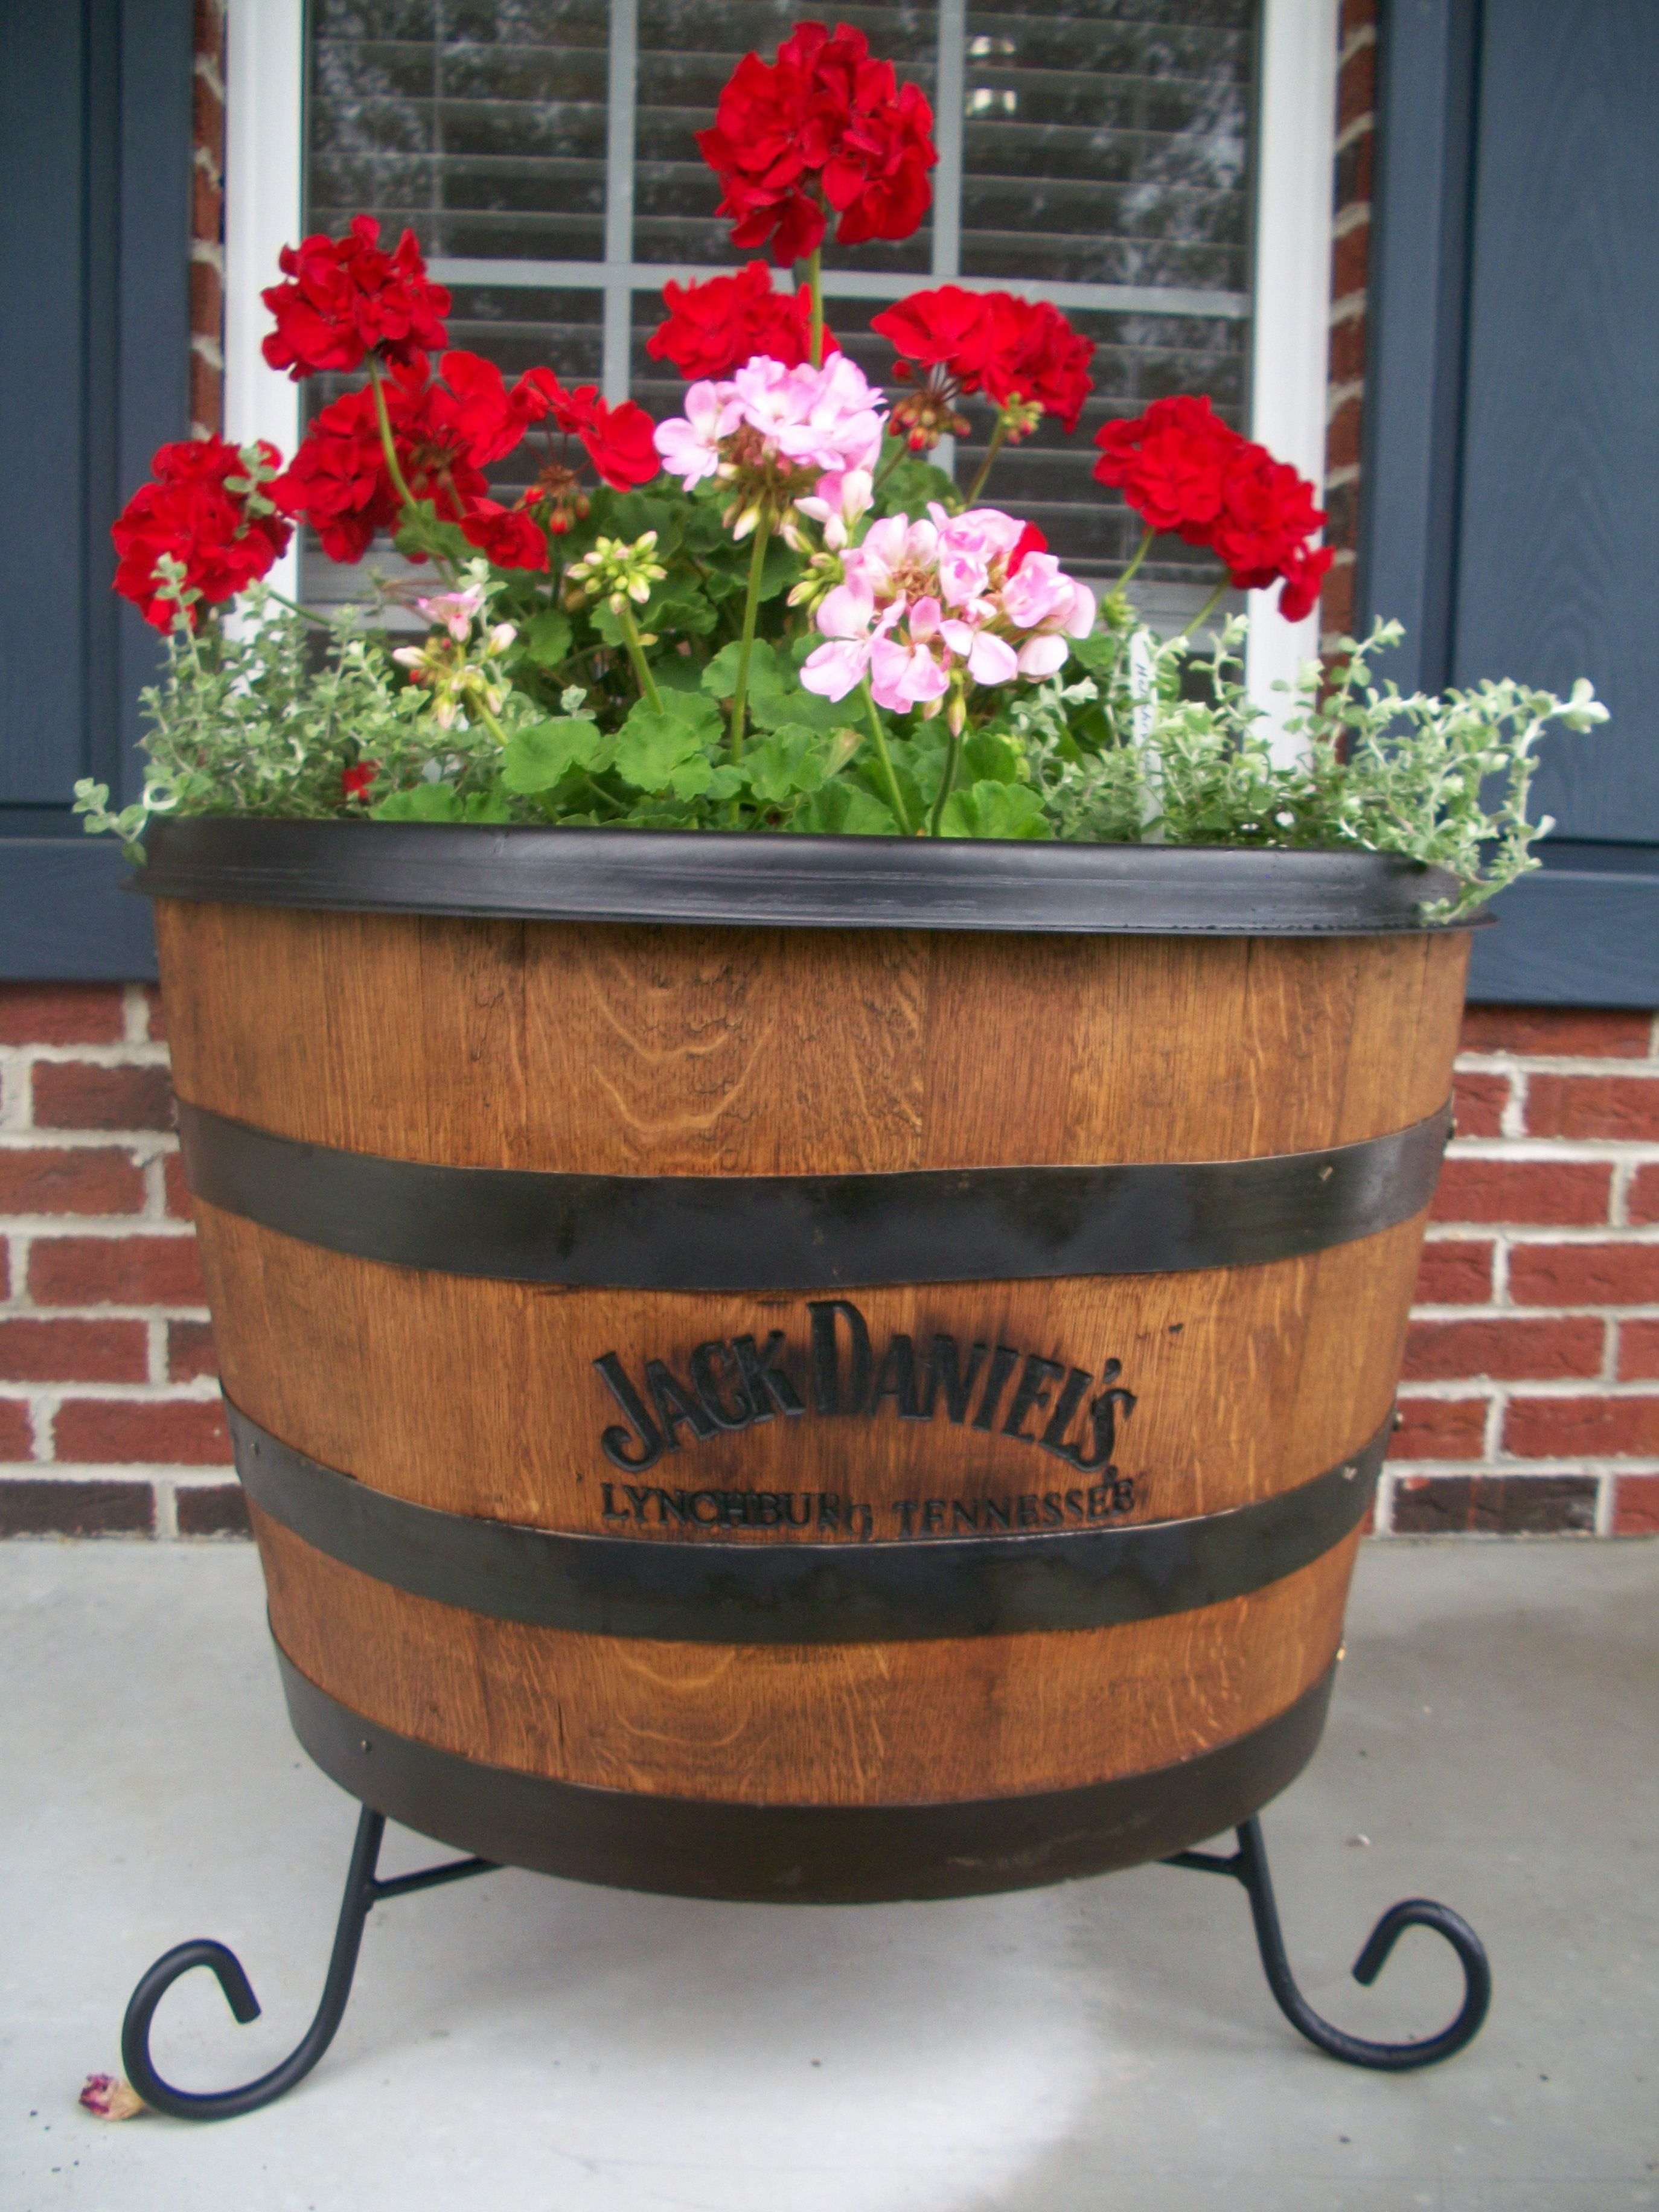 Our Jack Daniels whisky barrel planter! | gardening | Pinterest ...